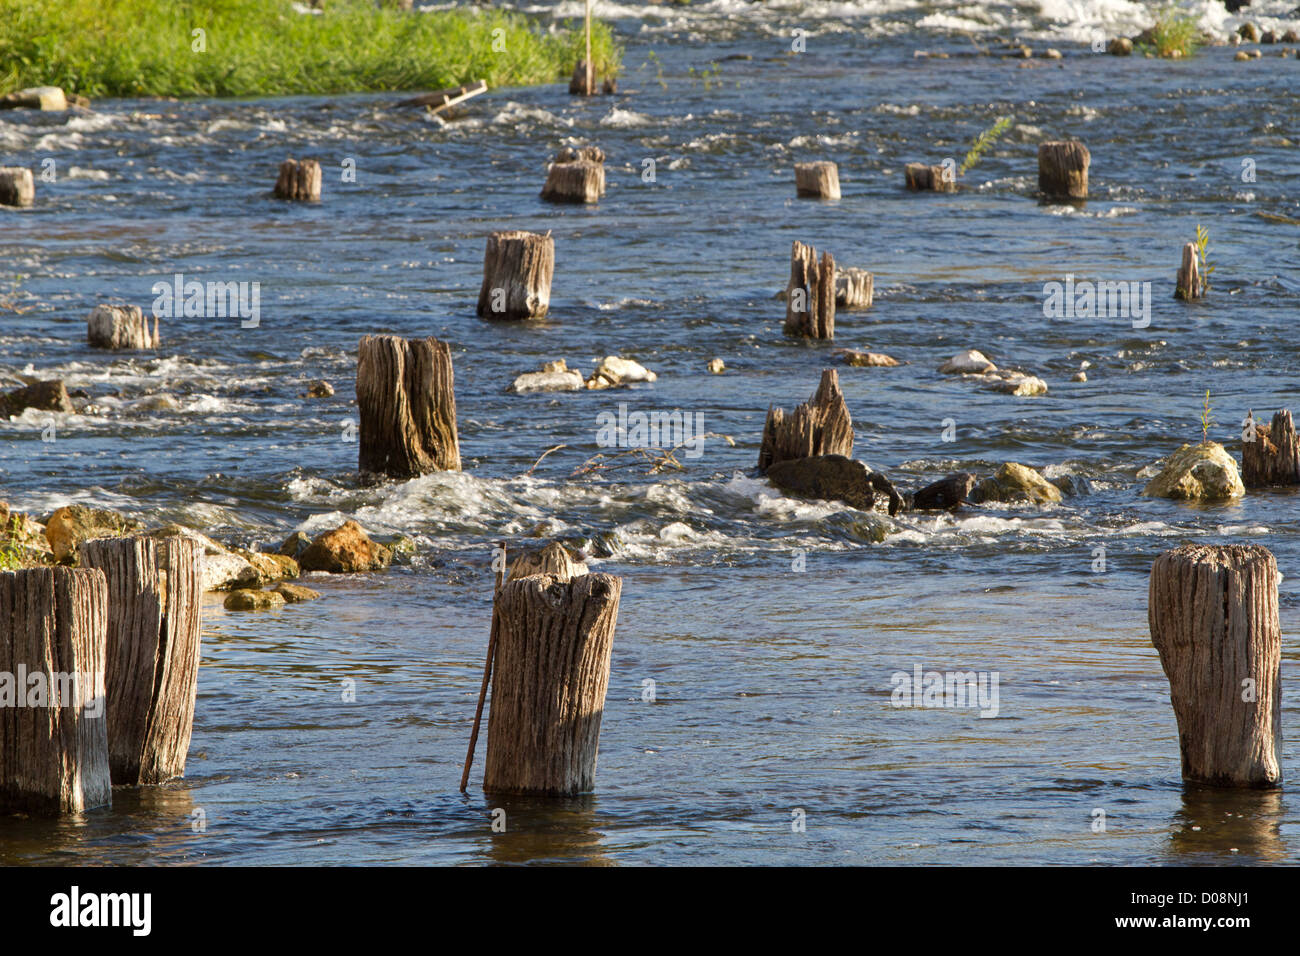 WOOD POSTS IN THE LOIRE RIVER AMBOISE INDRE-ET-LOIRE (37) FRANCE - Stock Image